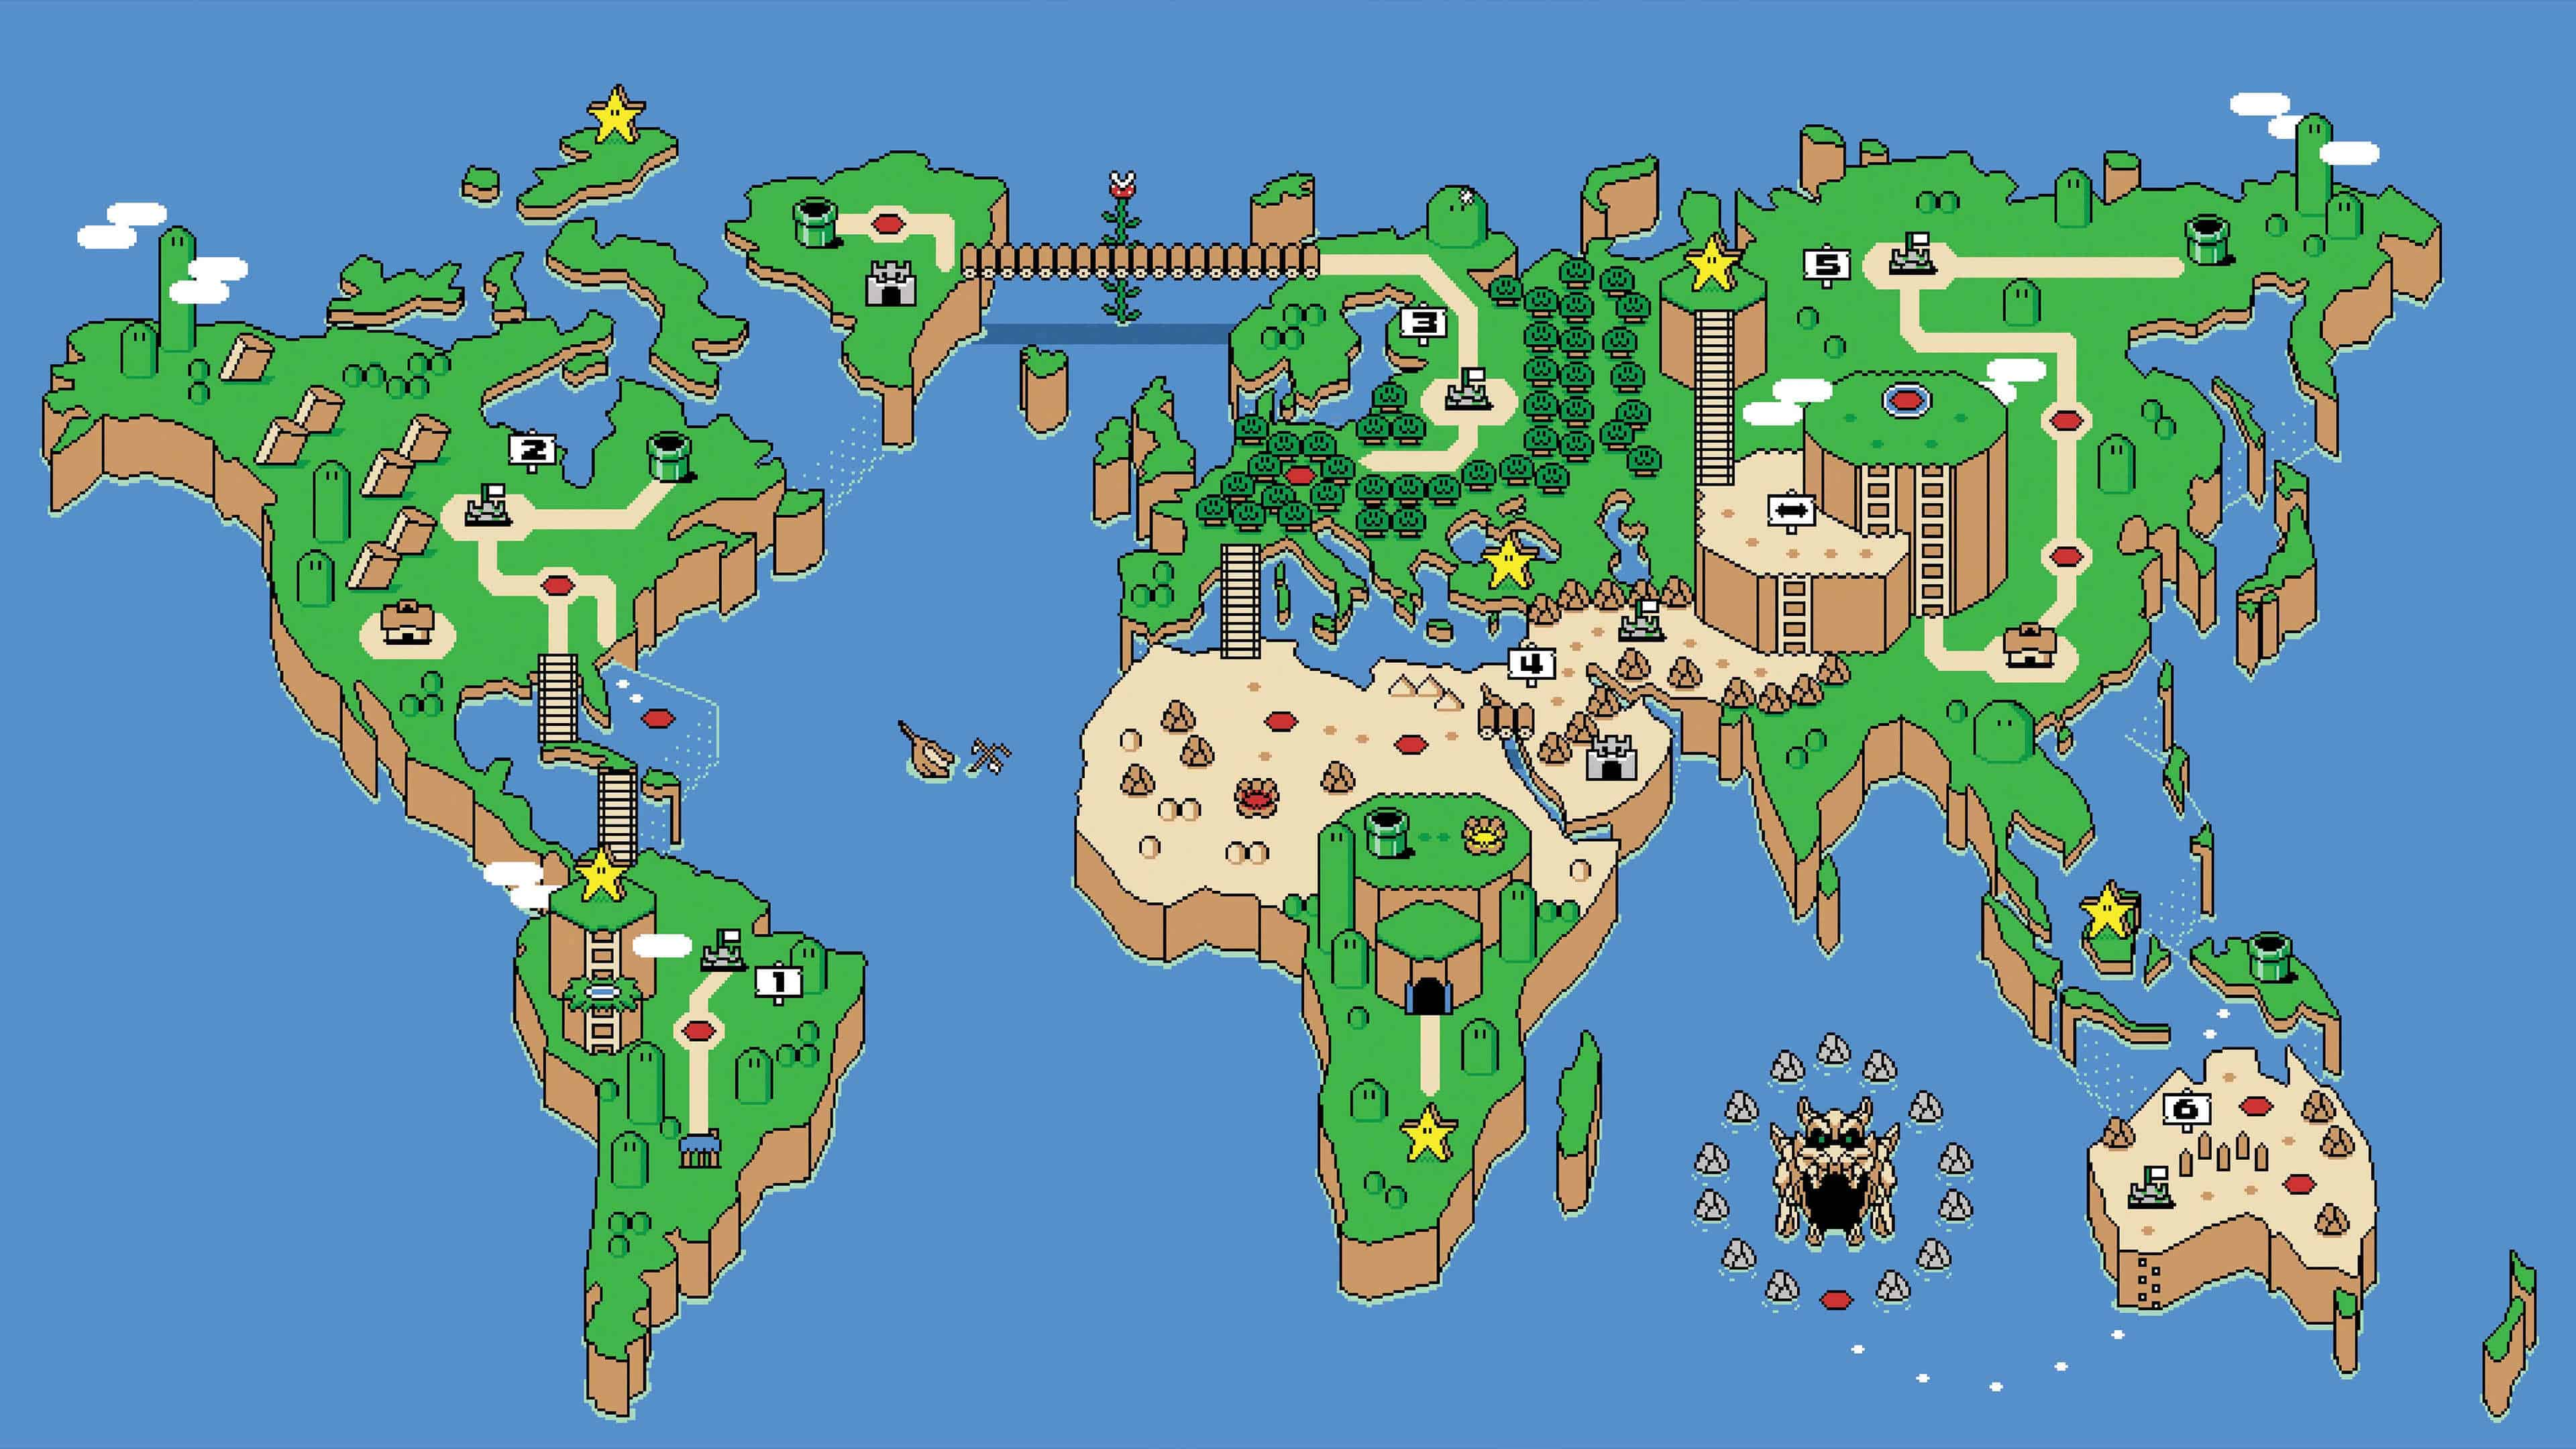 Best Cars And Bikes Wallpapers Super Mario World Map Uhd 4k Wallpaper Pixelz